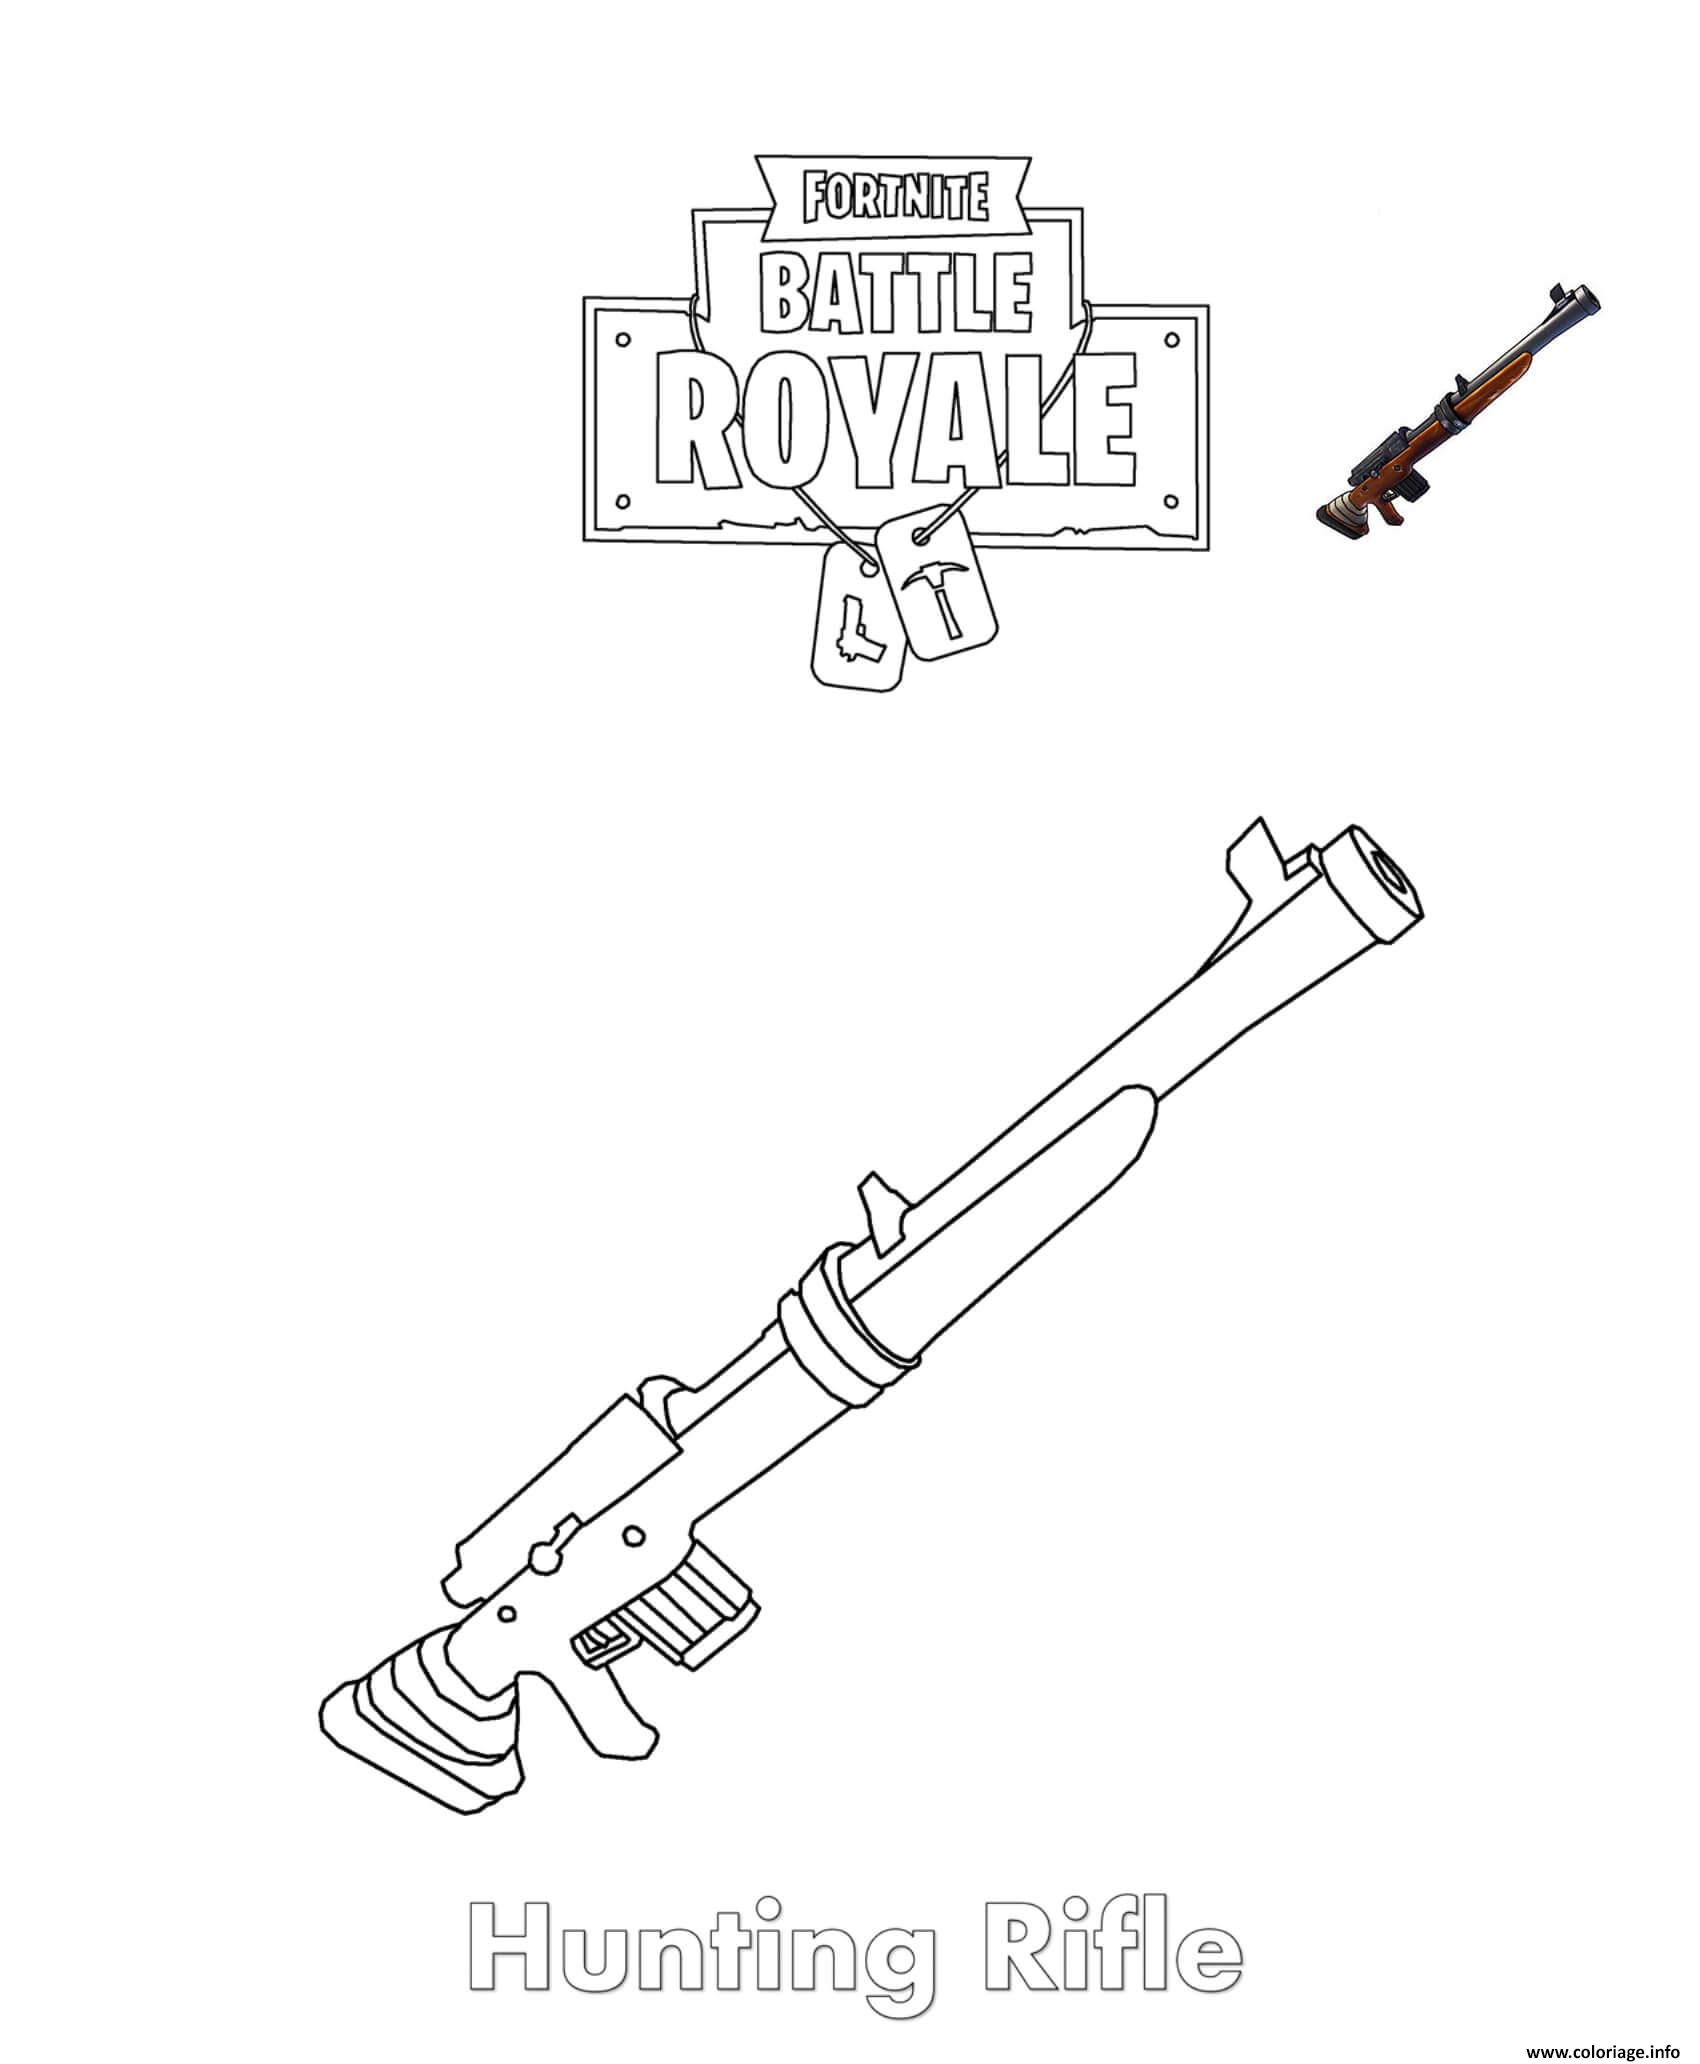 Coloriage Hunting Rifle Fortnite Dessin à Imprimer